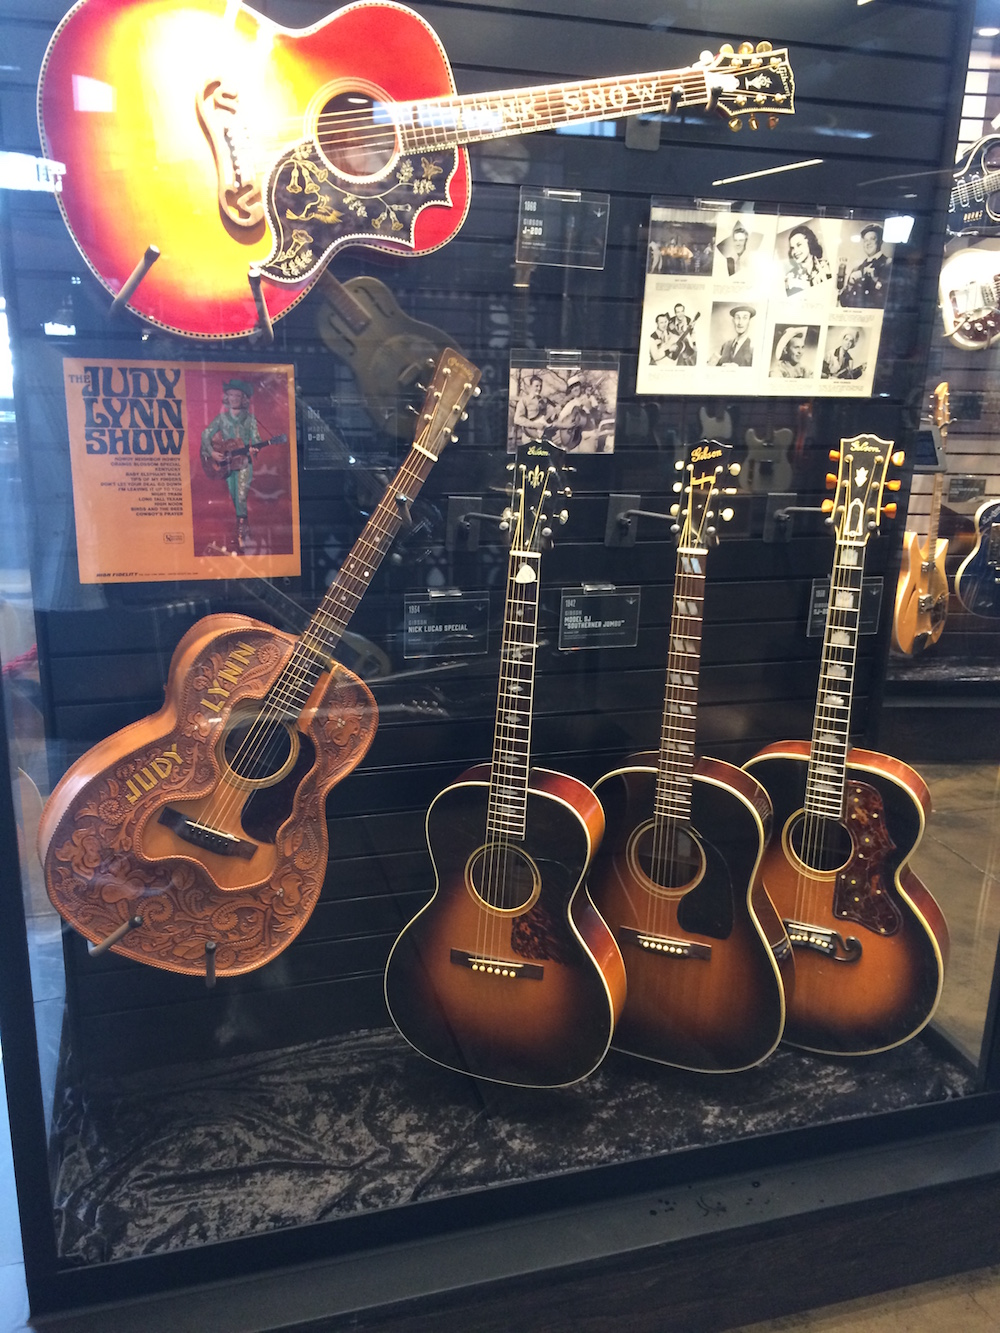 Leather-covered guitar played by Judy Lynn